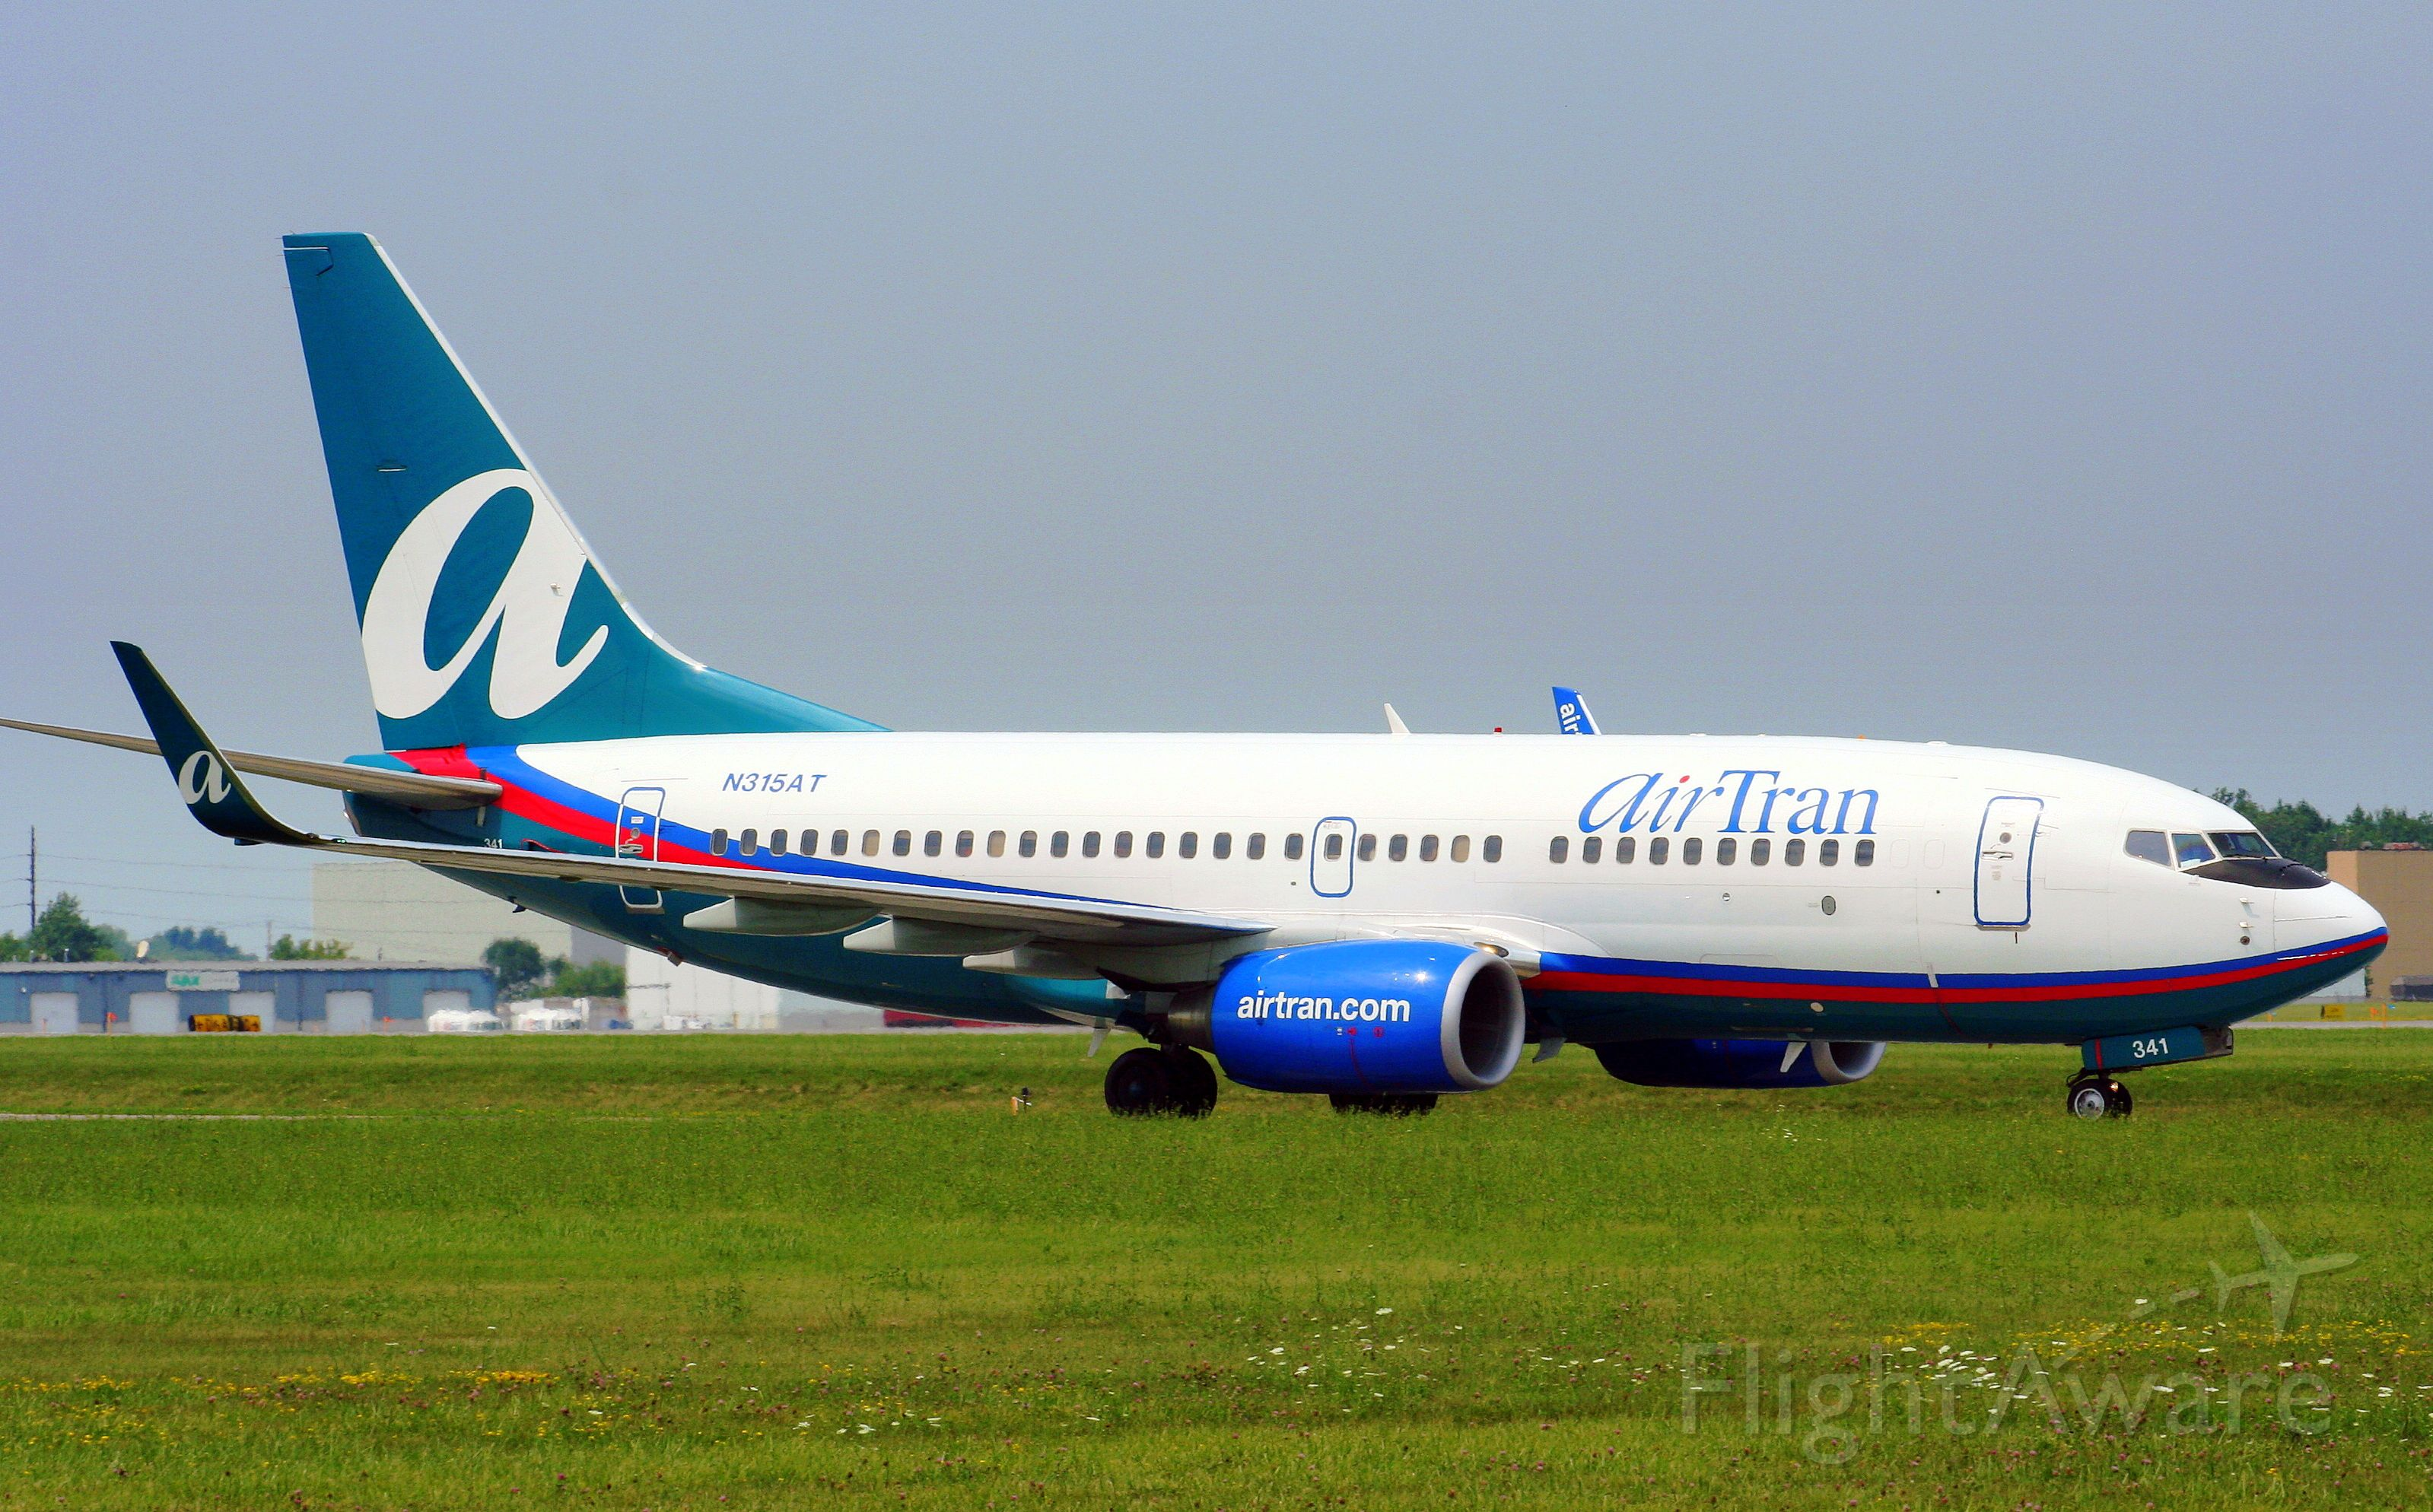 Boeing 737-700 (N315AT) - On arrival, and taxing towards the terminal.